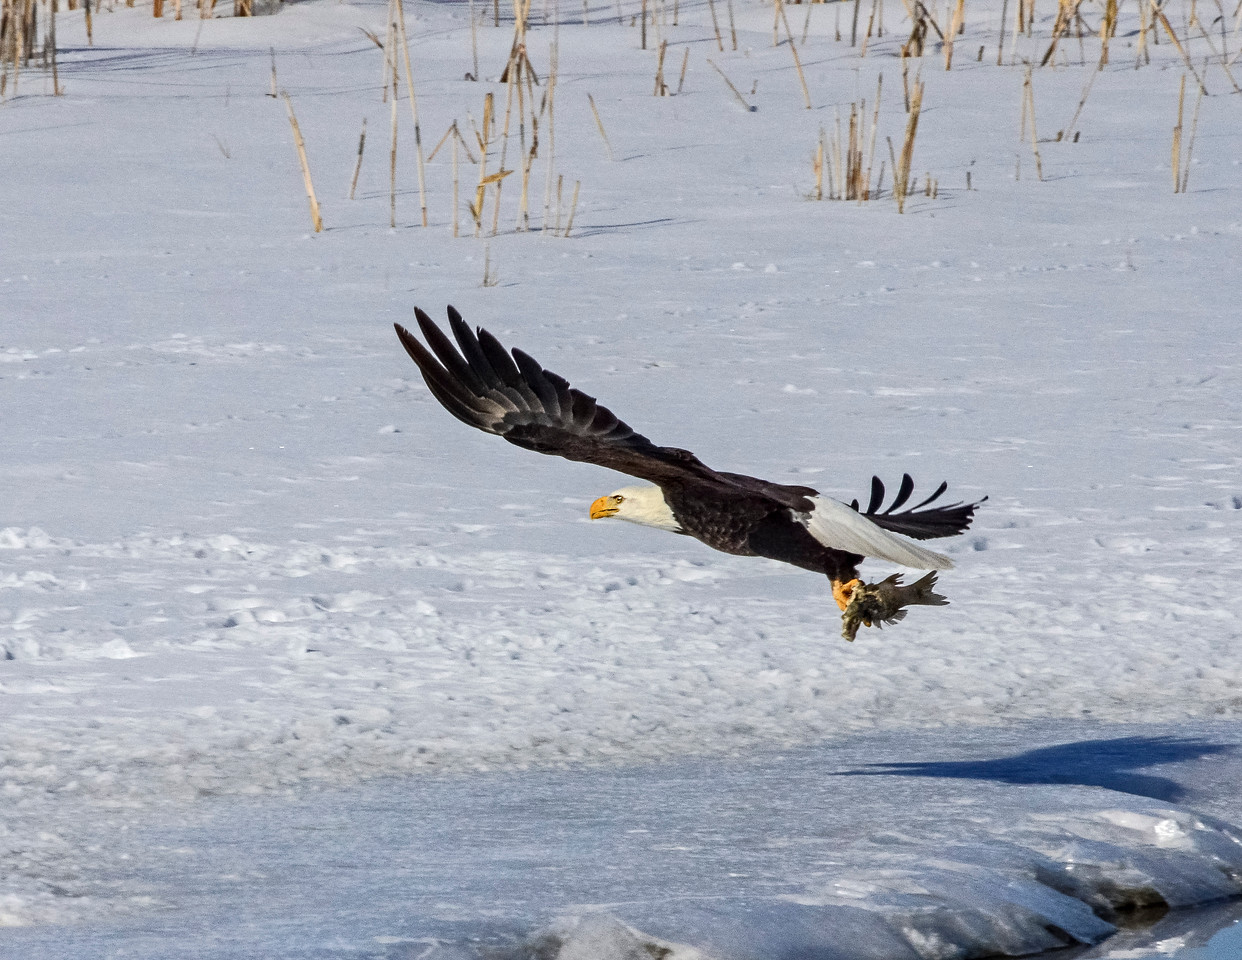 Oh my, I stole part of a fish. 